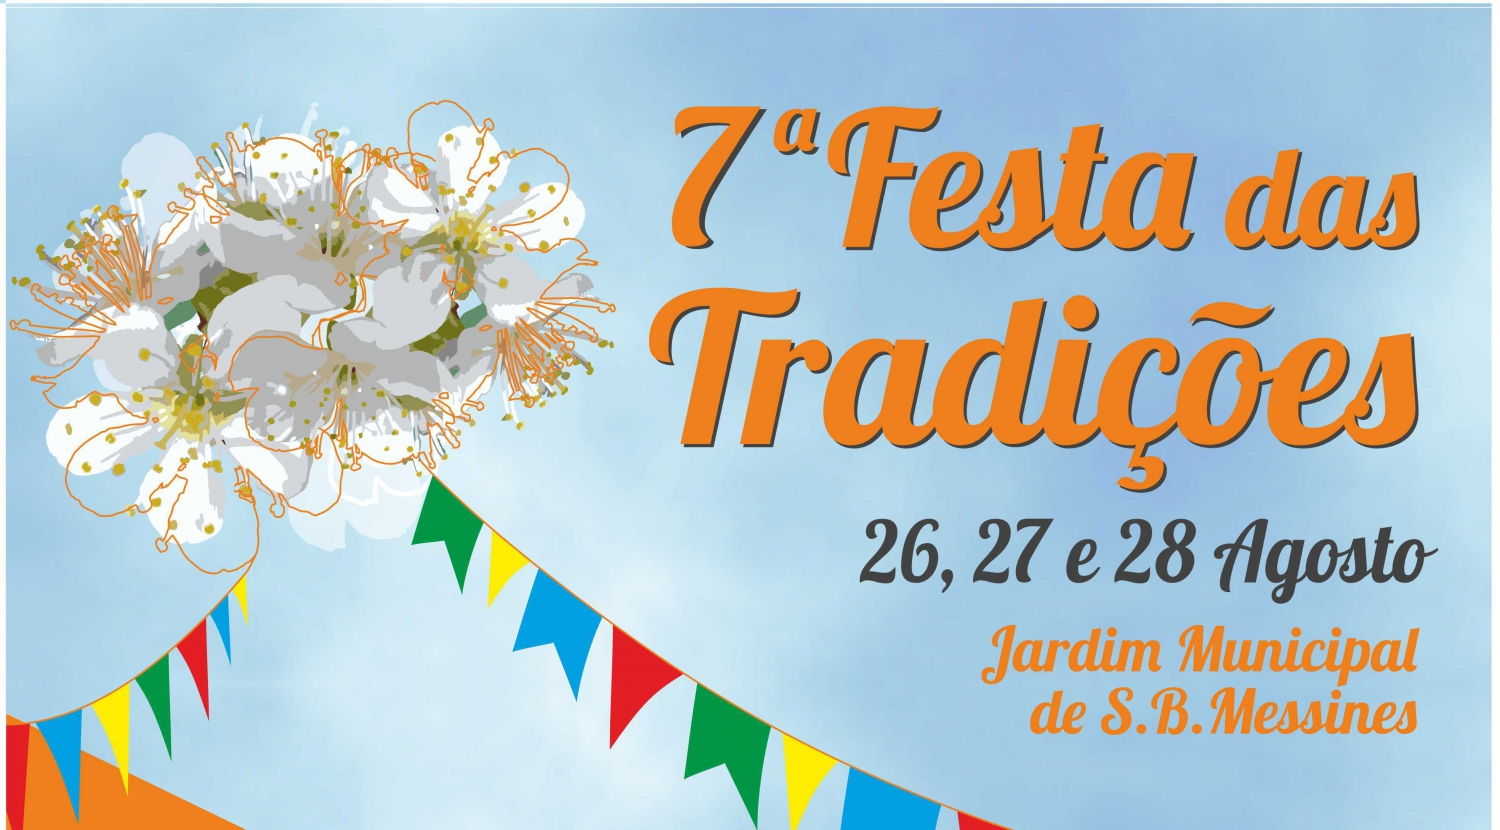 Festival of Traditions